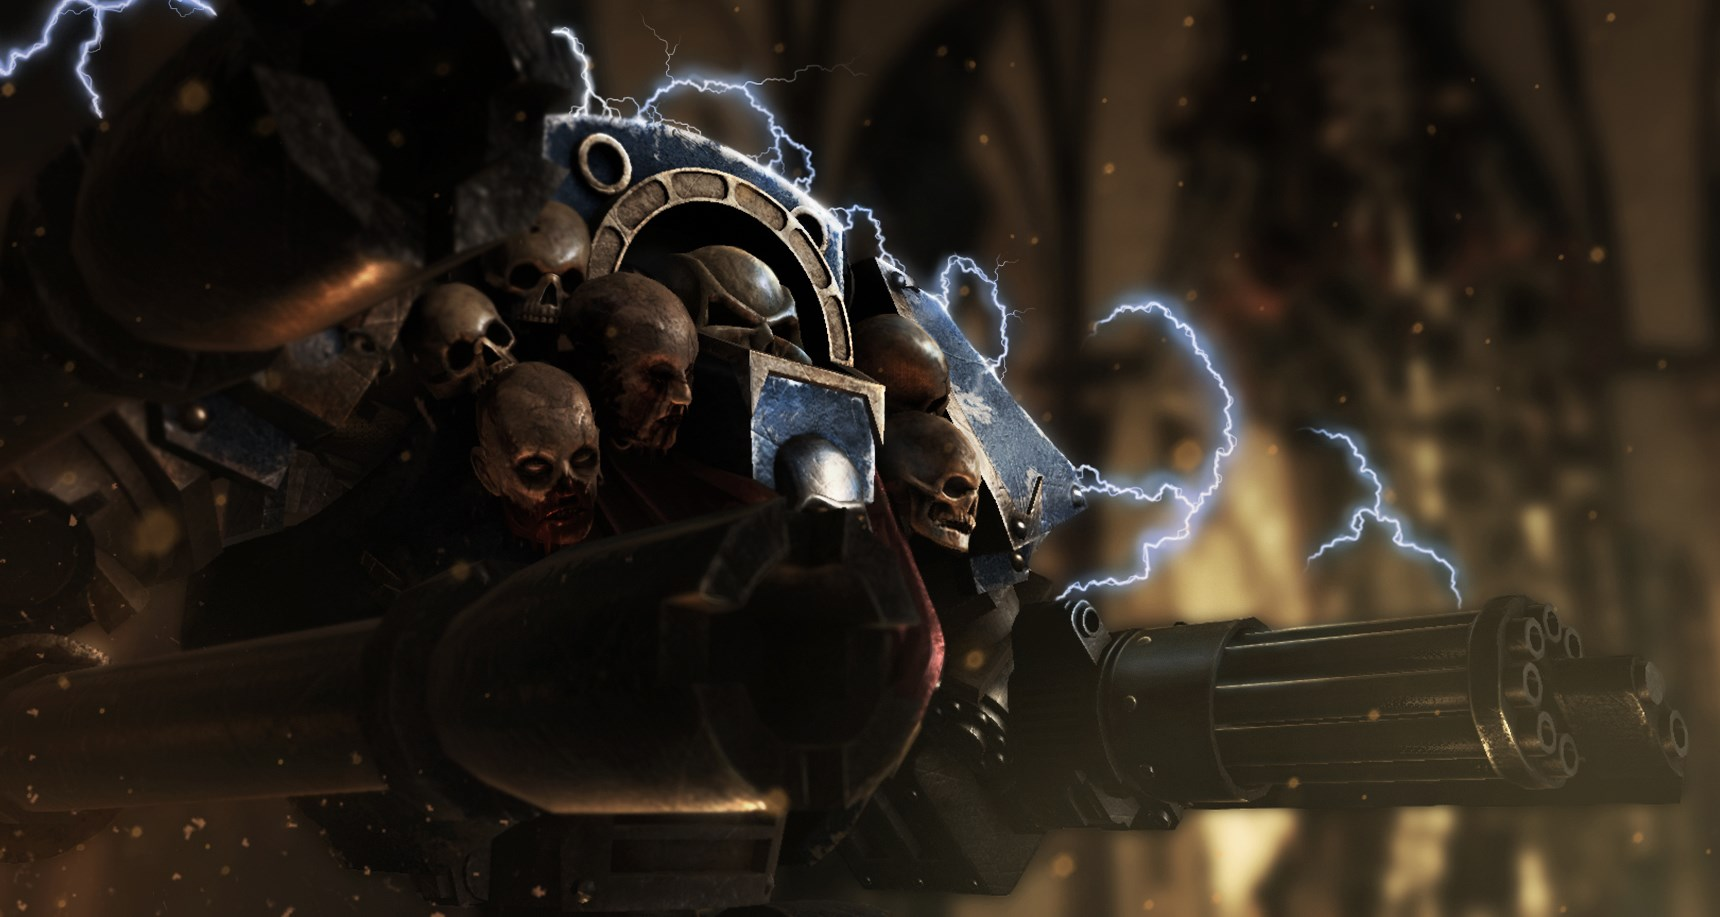 Warhammer 40000 Inquisitor Martyr Trailer Delivers